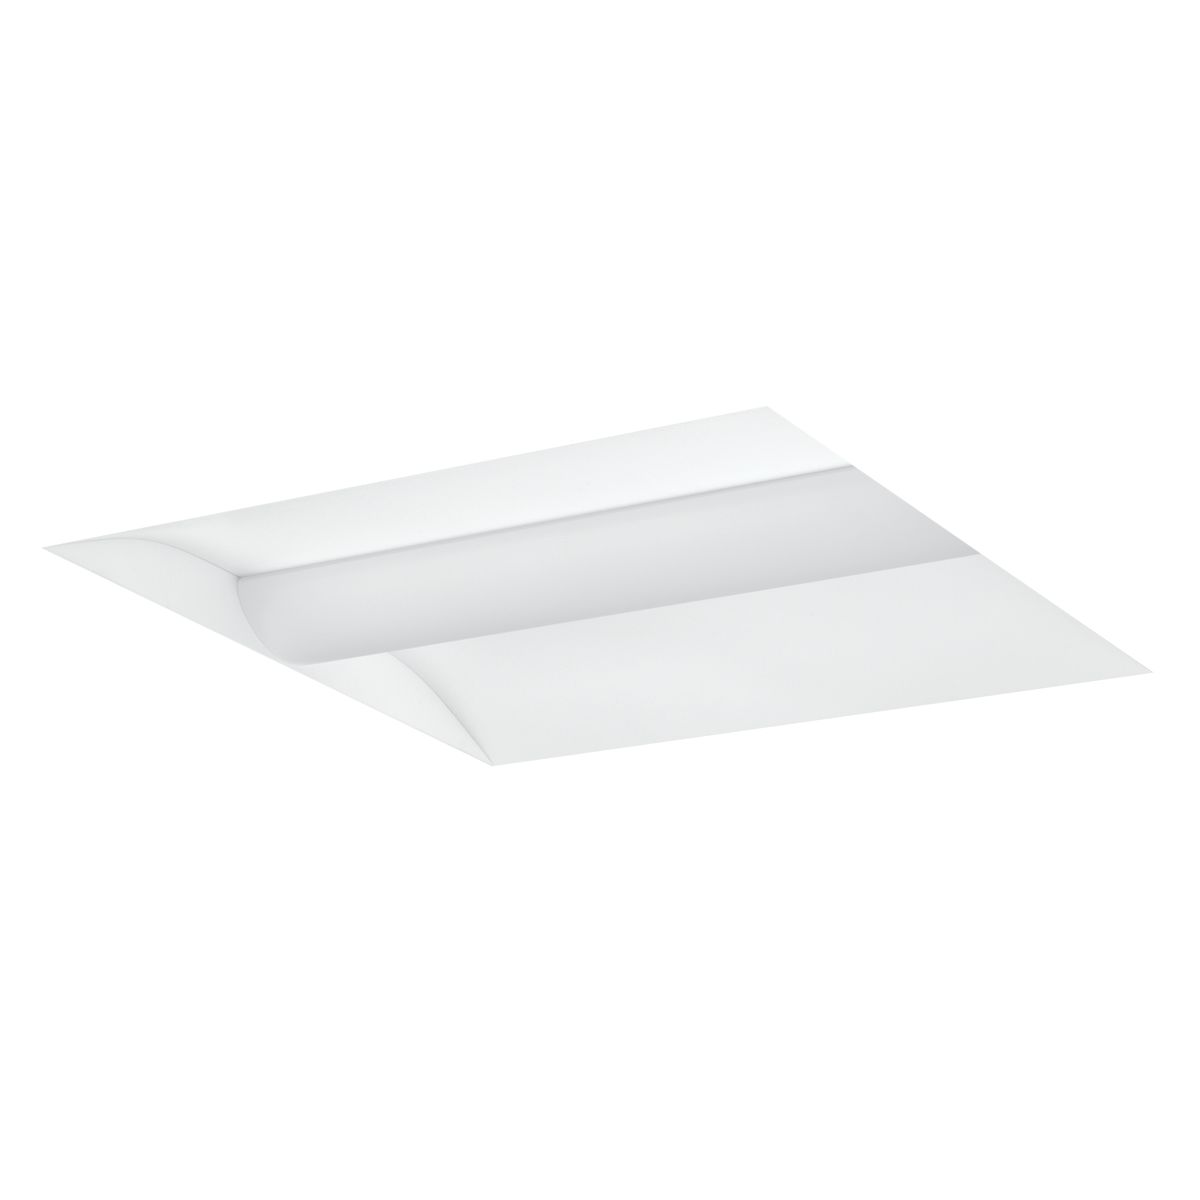 lcat led contemporary architectural